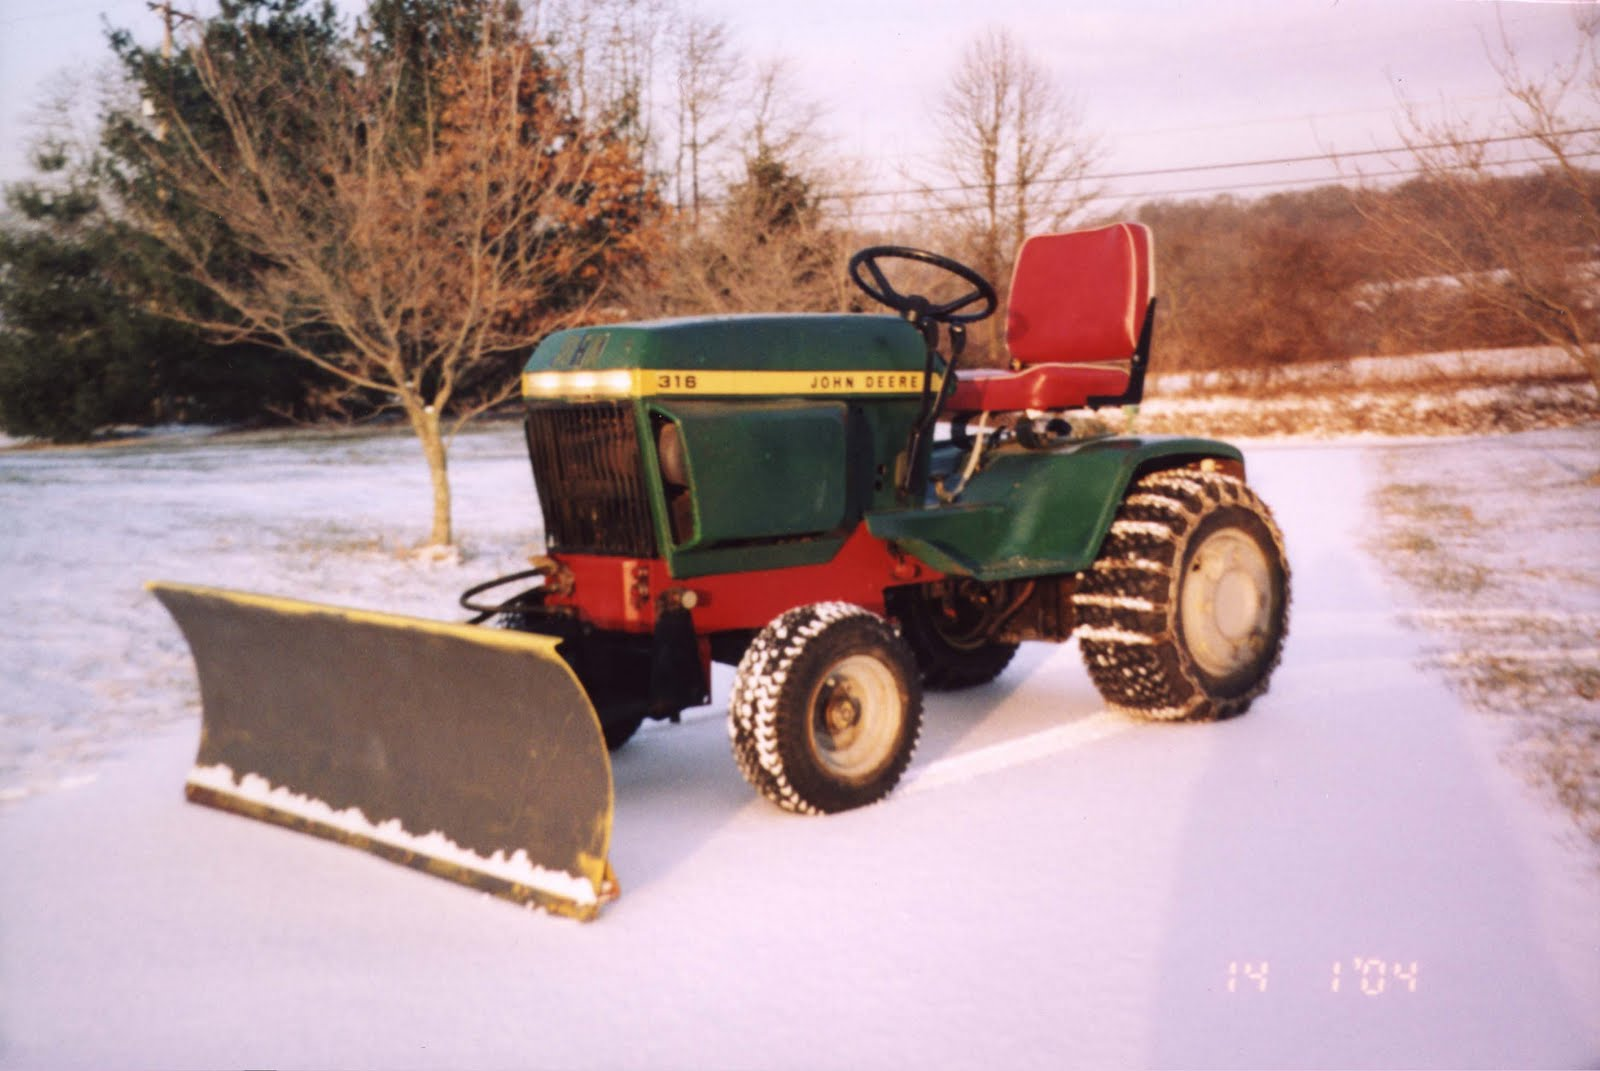 Robert's Projects: John Deere 300 Tractor - Mule Hitch